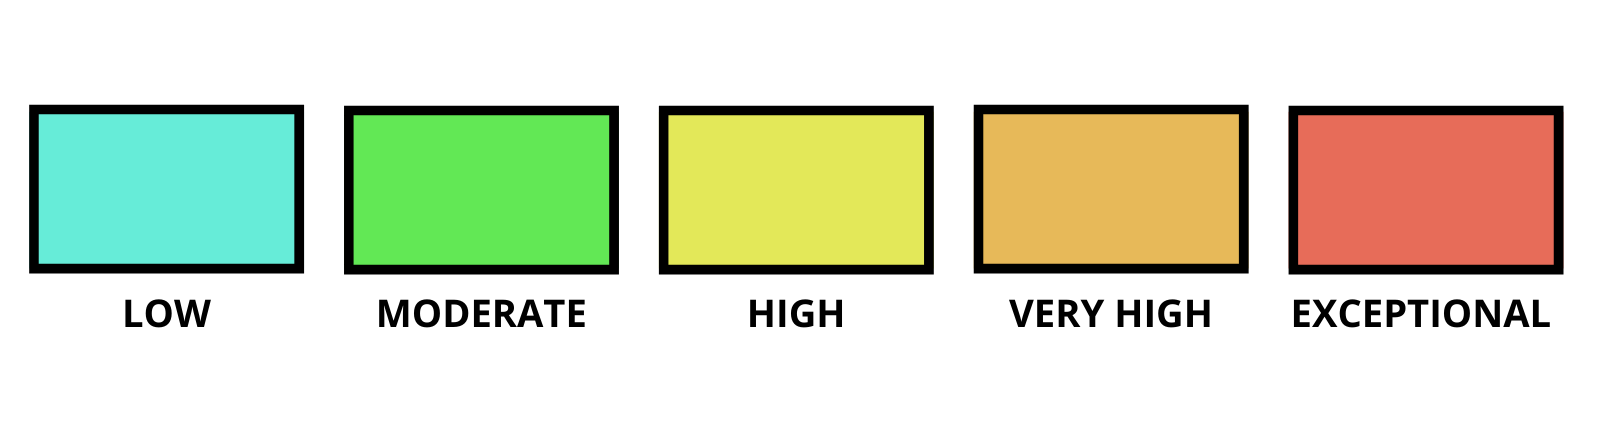 Visual representation of the 5 levels from Low in blue to exceptional in red.